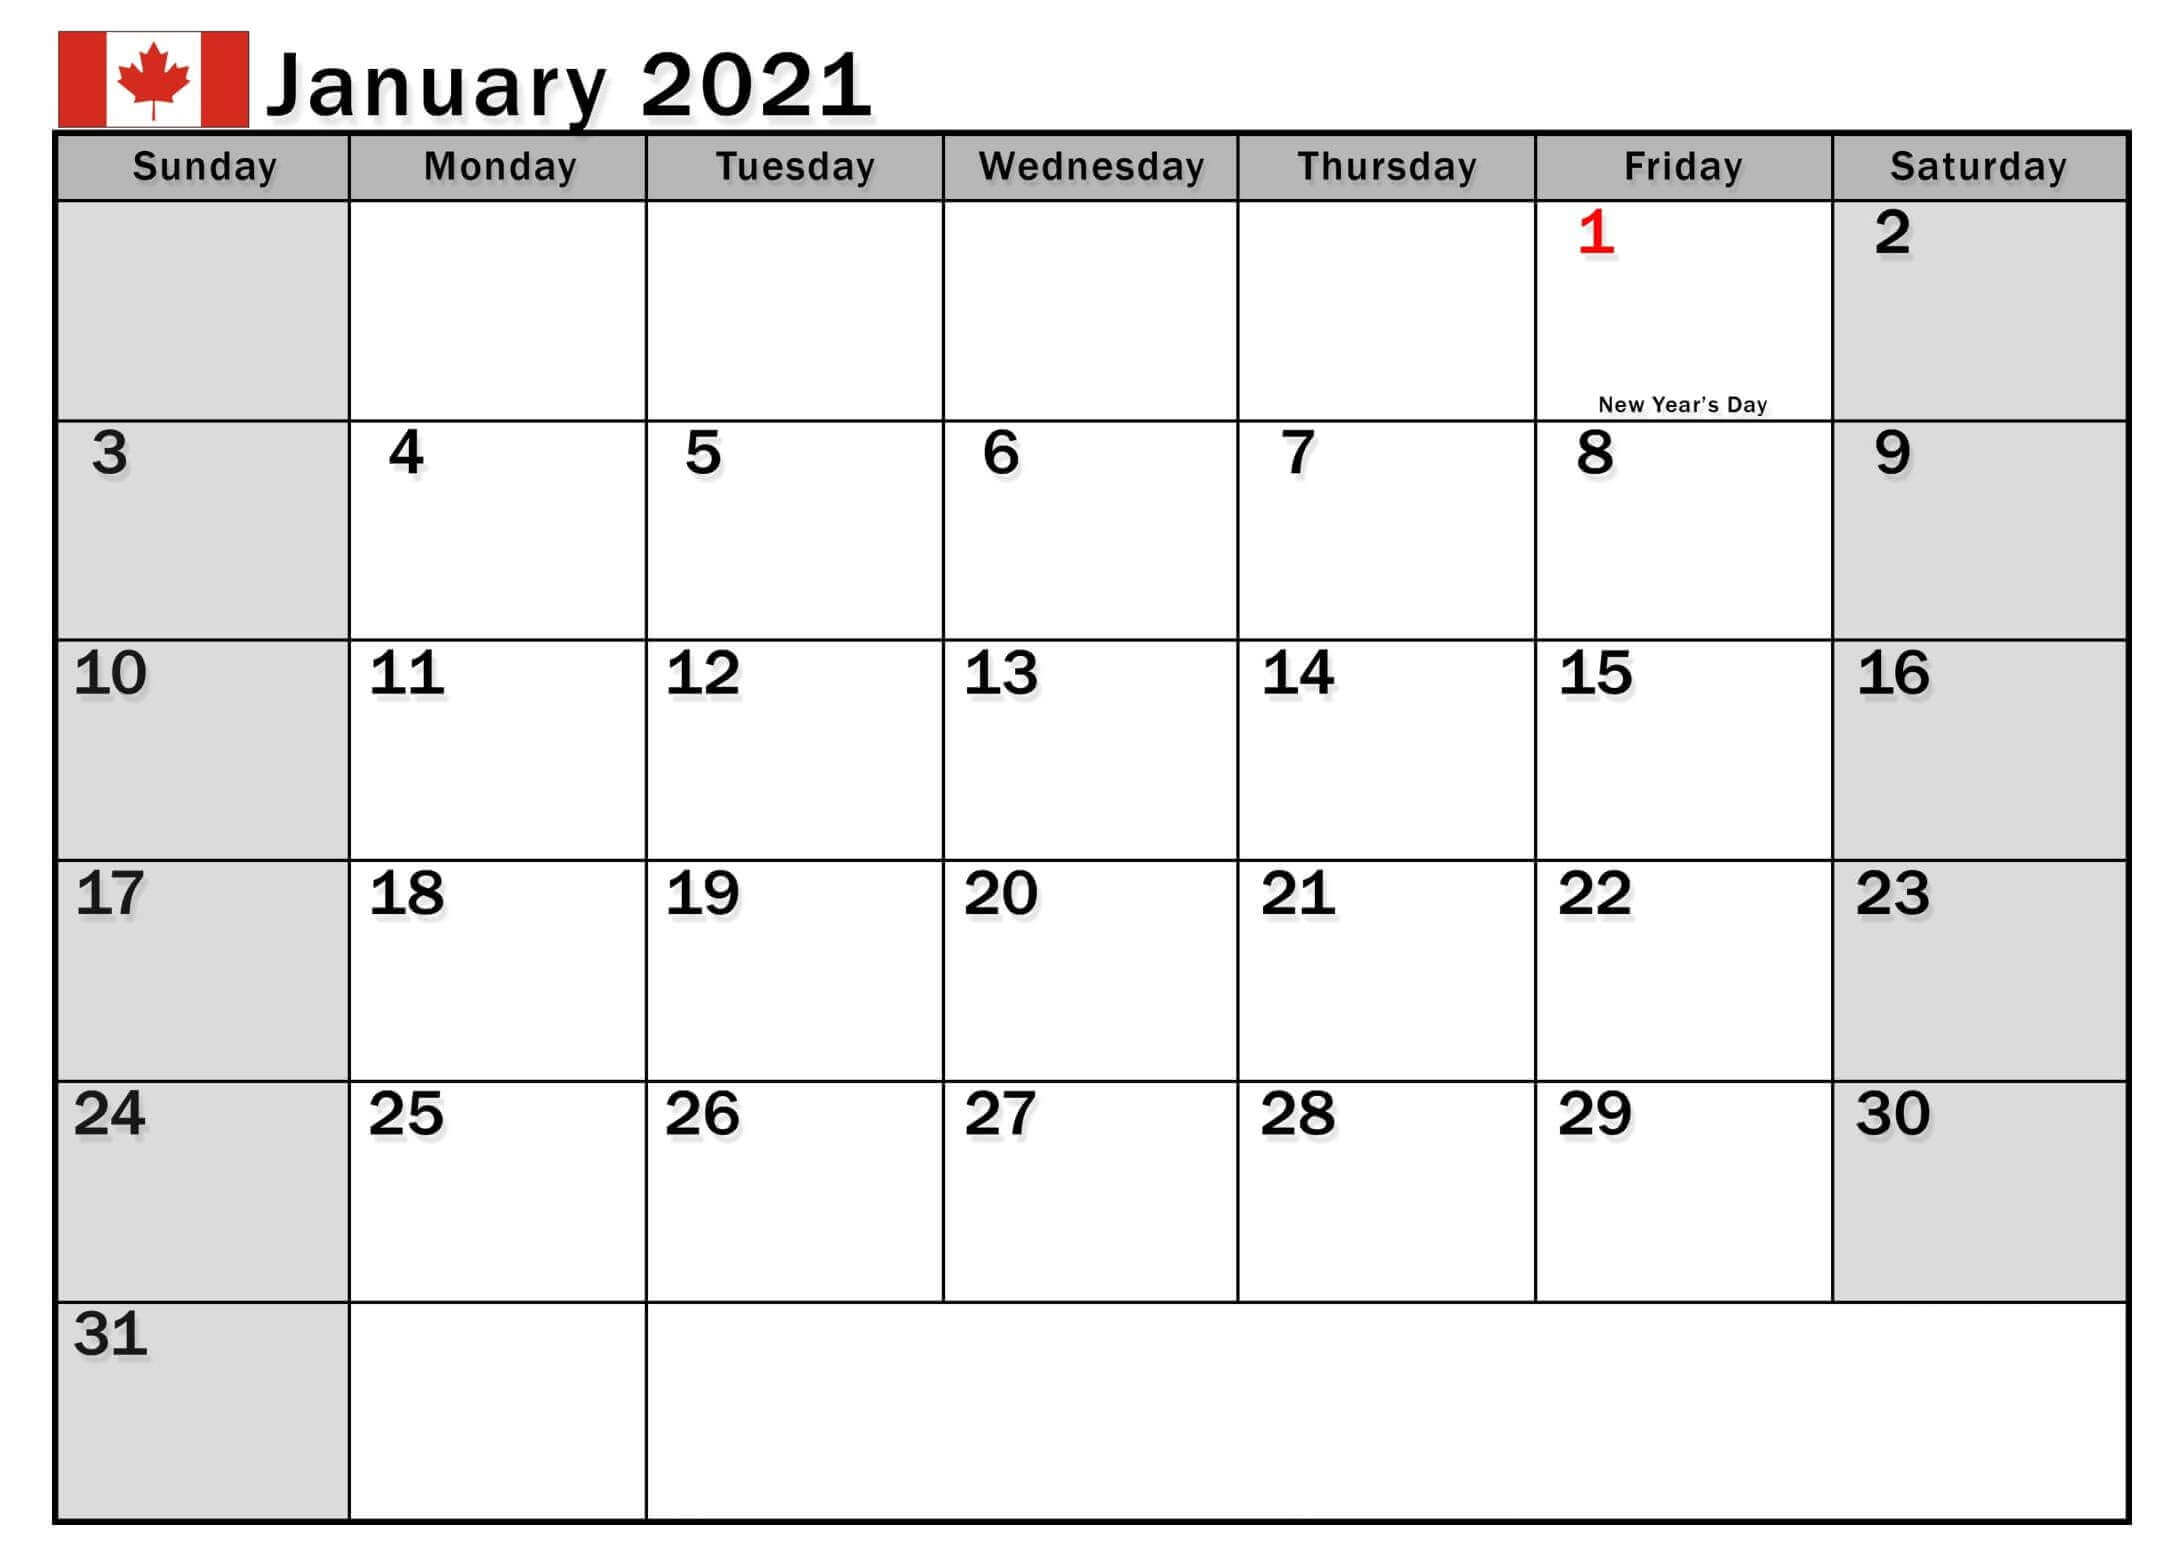 January 2021 Canada Calendar with Holidays